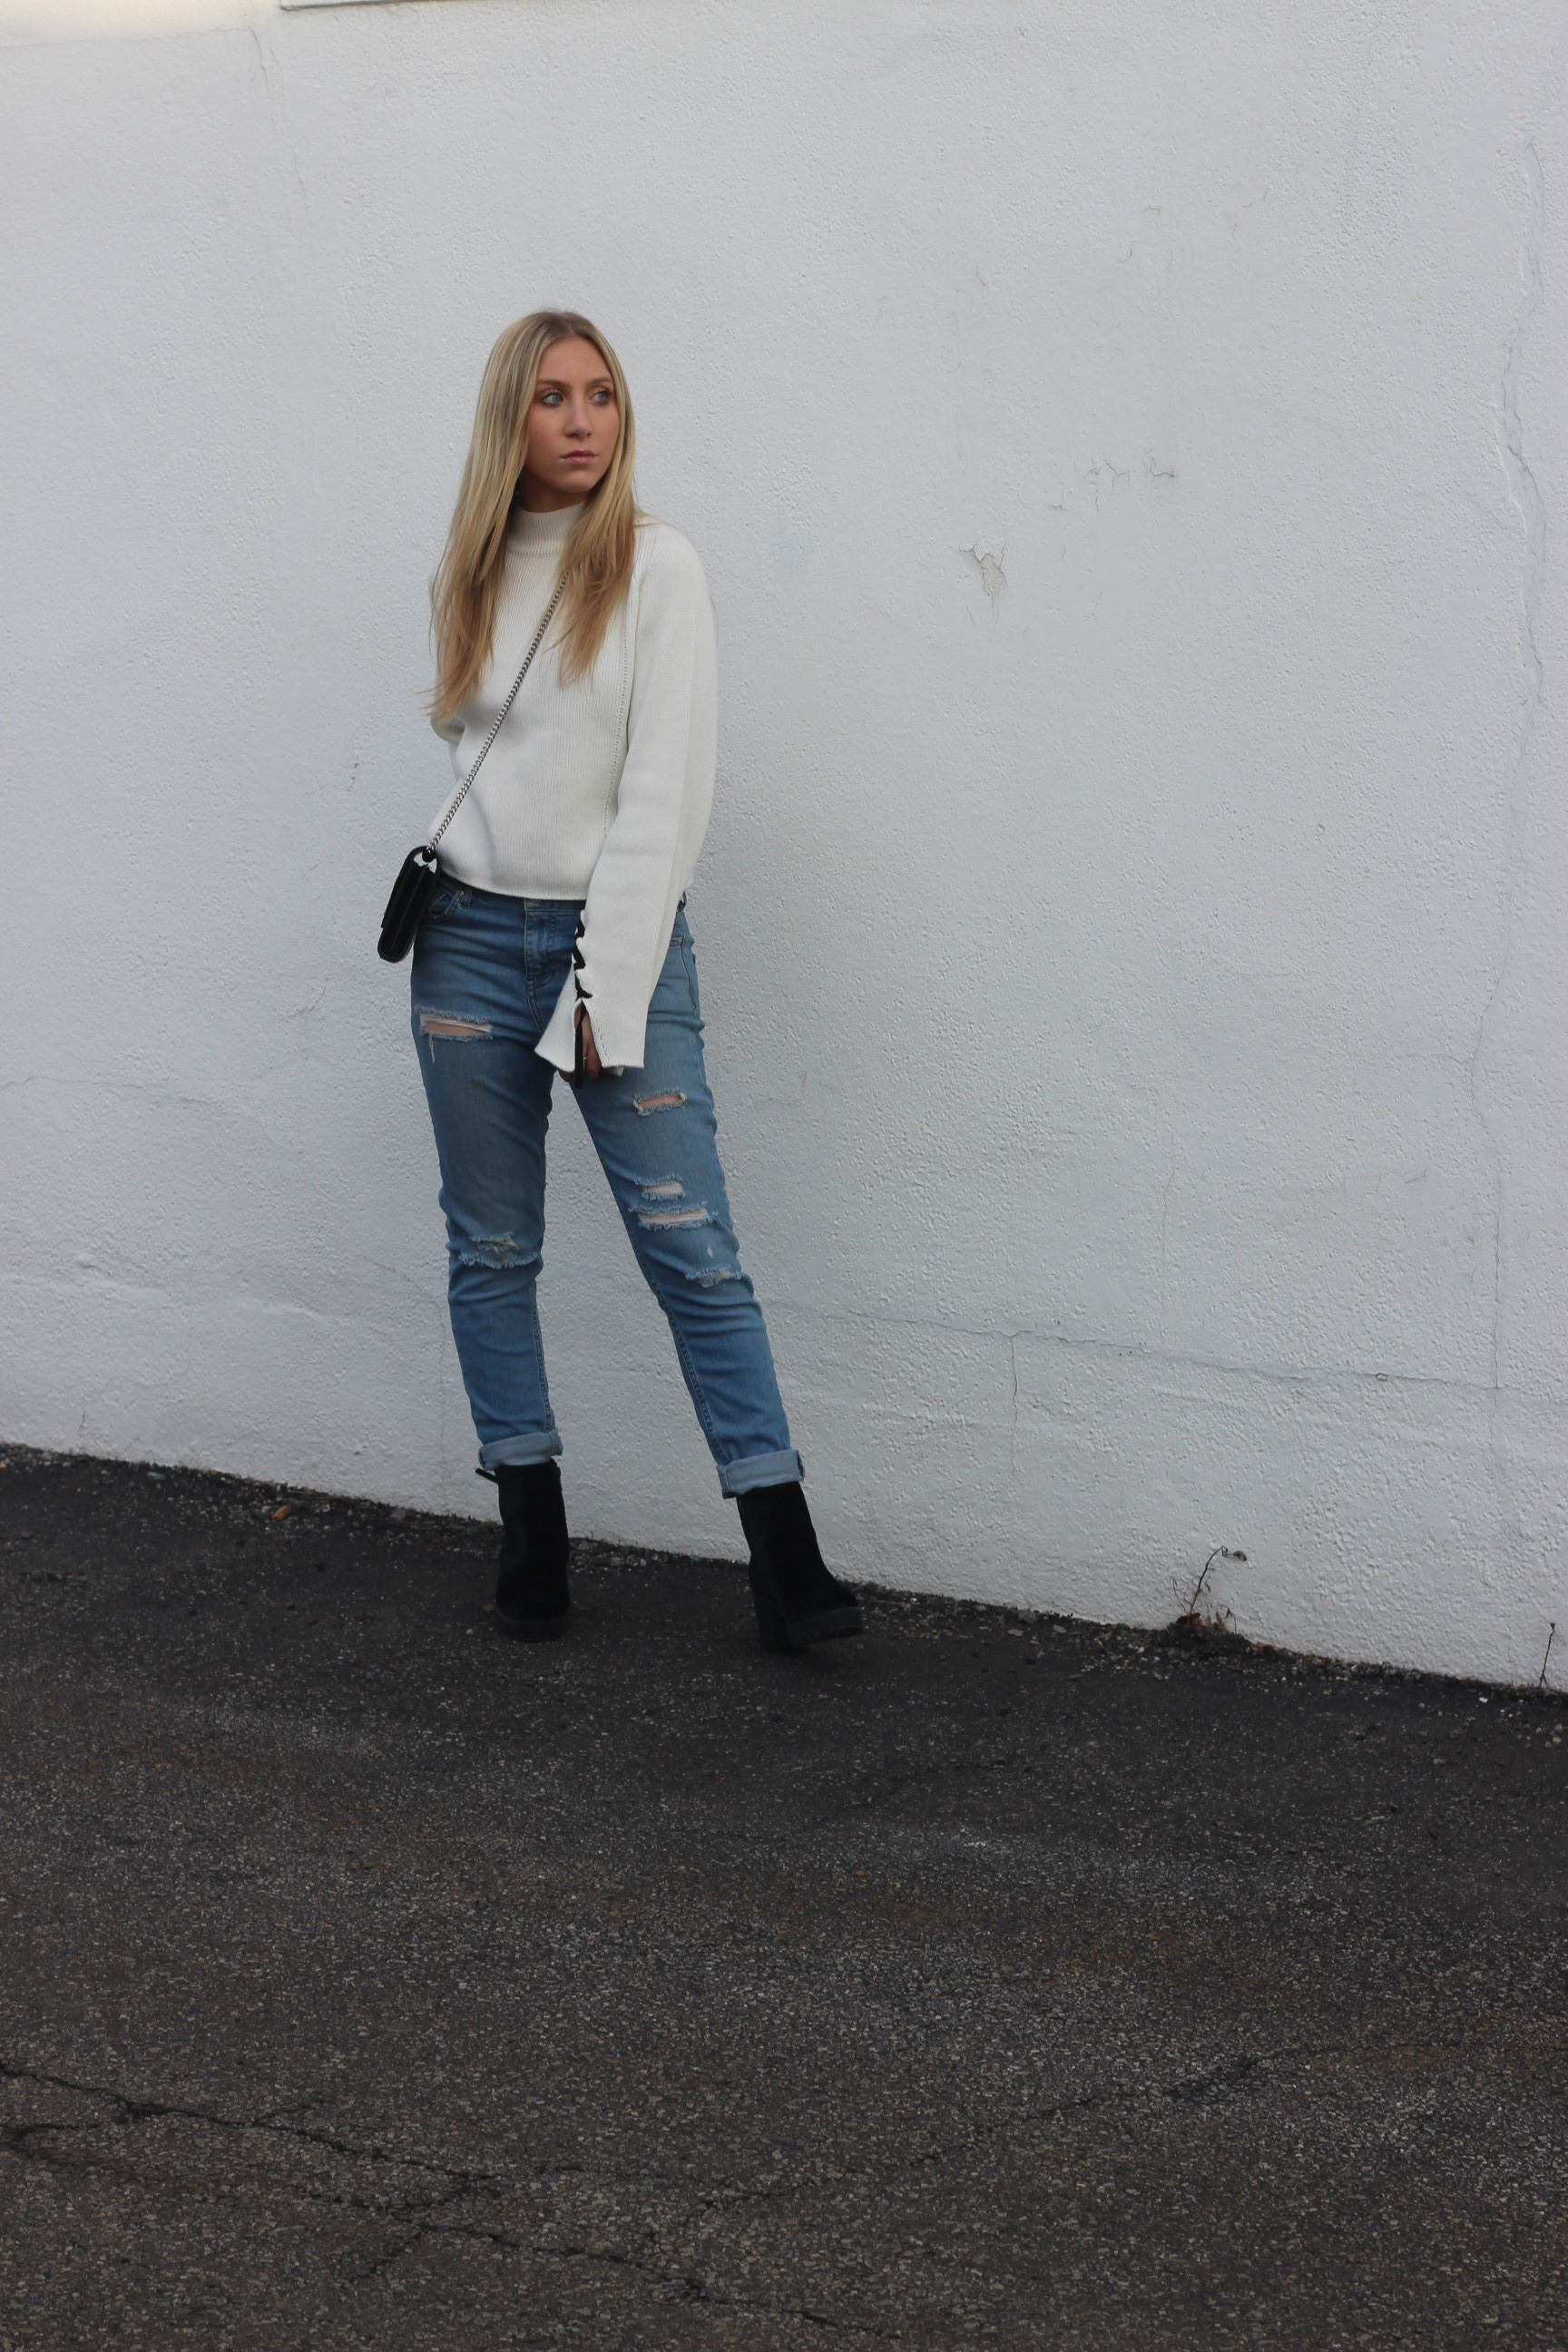 Aldo booties, statement sweater, boyfriend jeans, and saint laurent bag by Au Courant Life